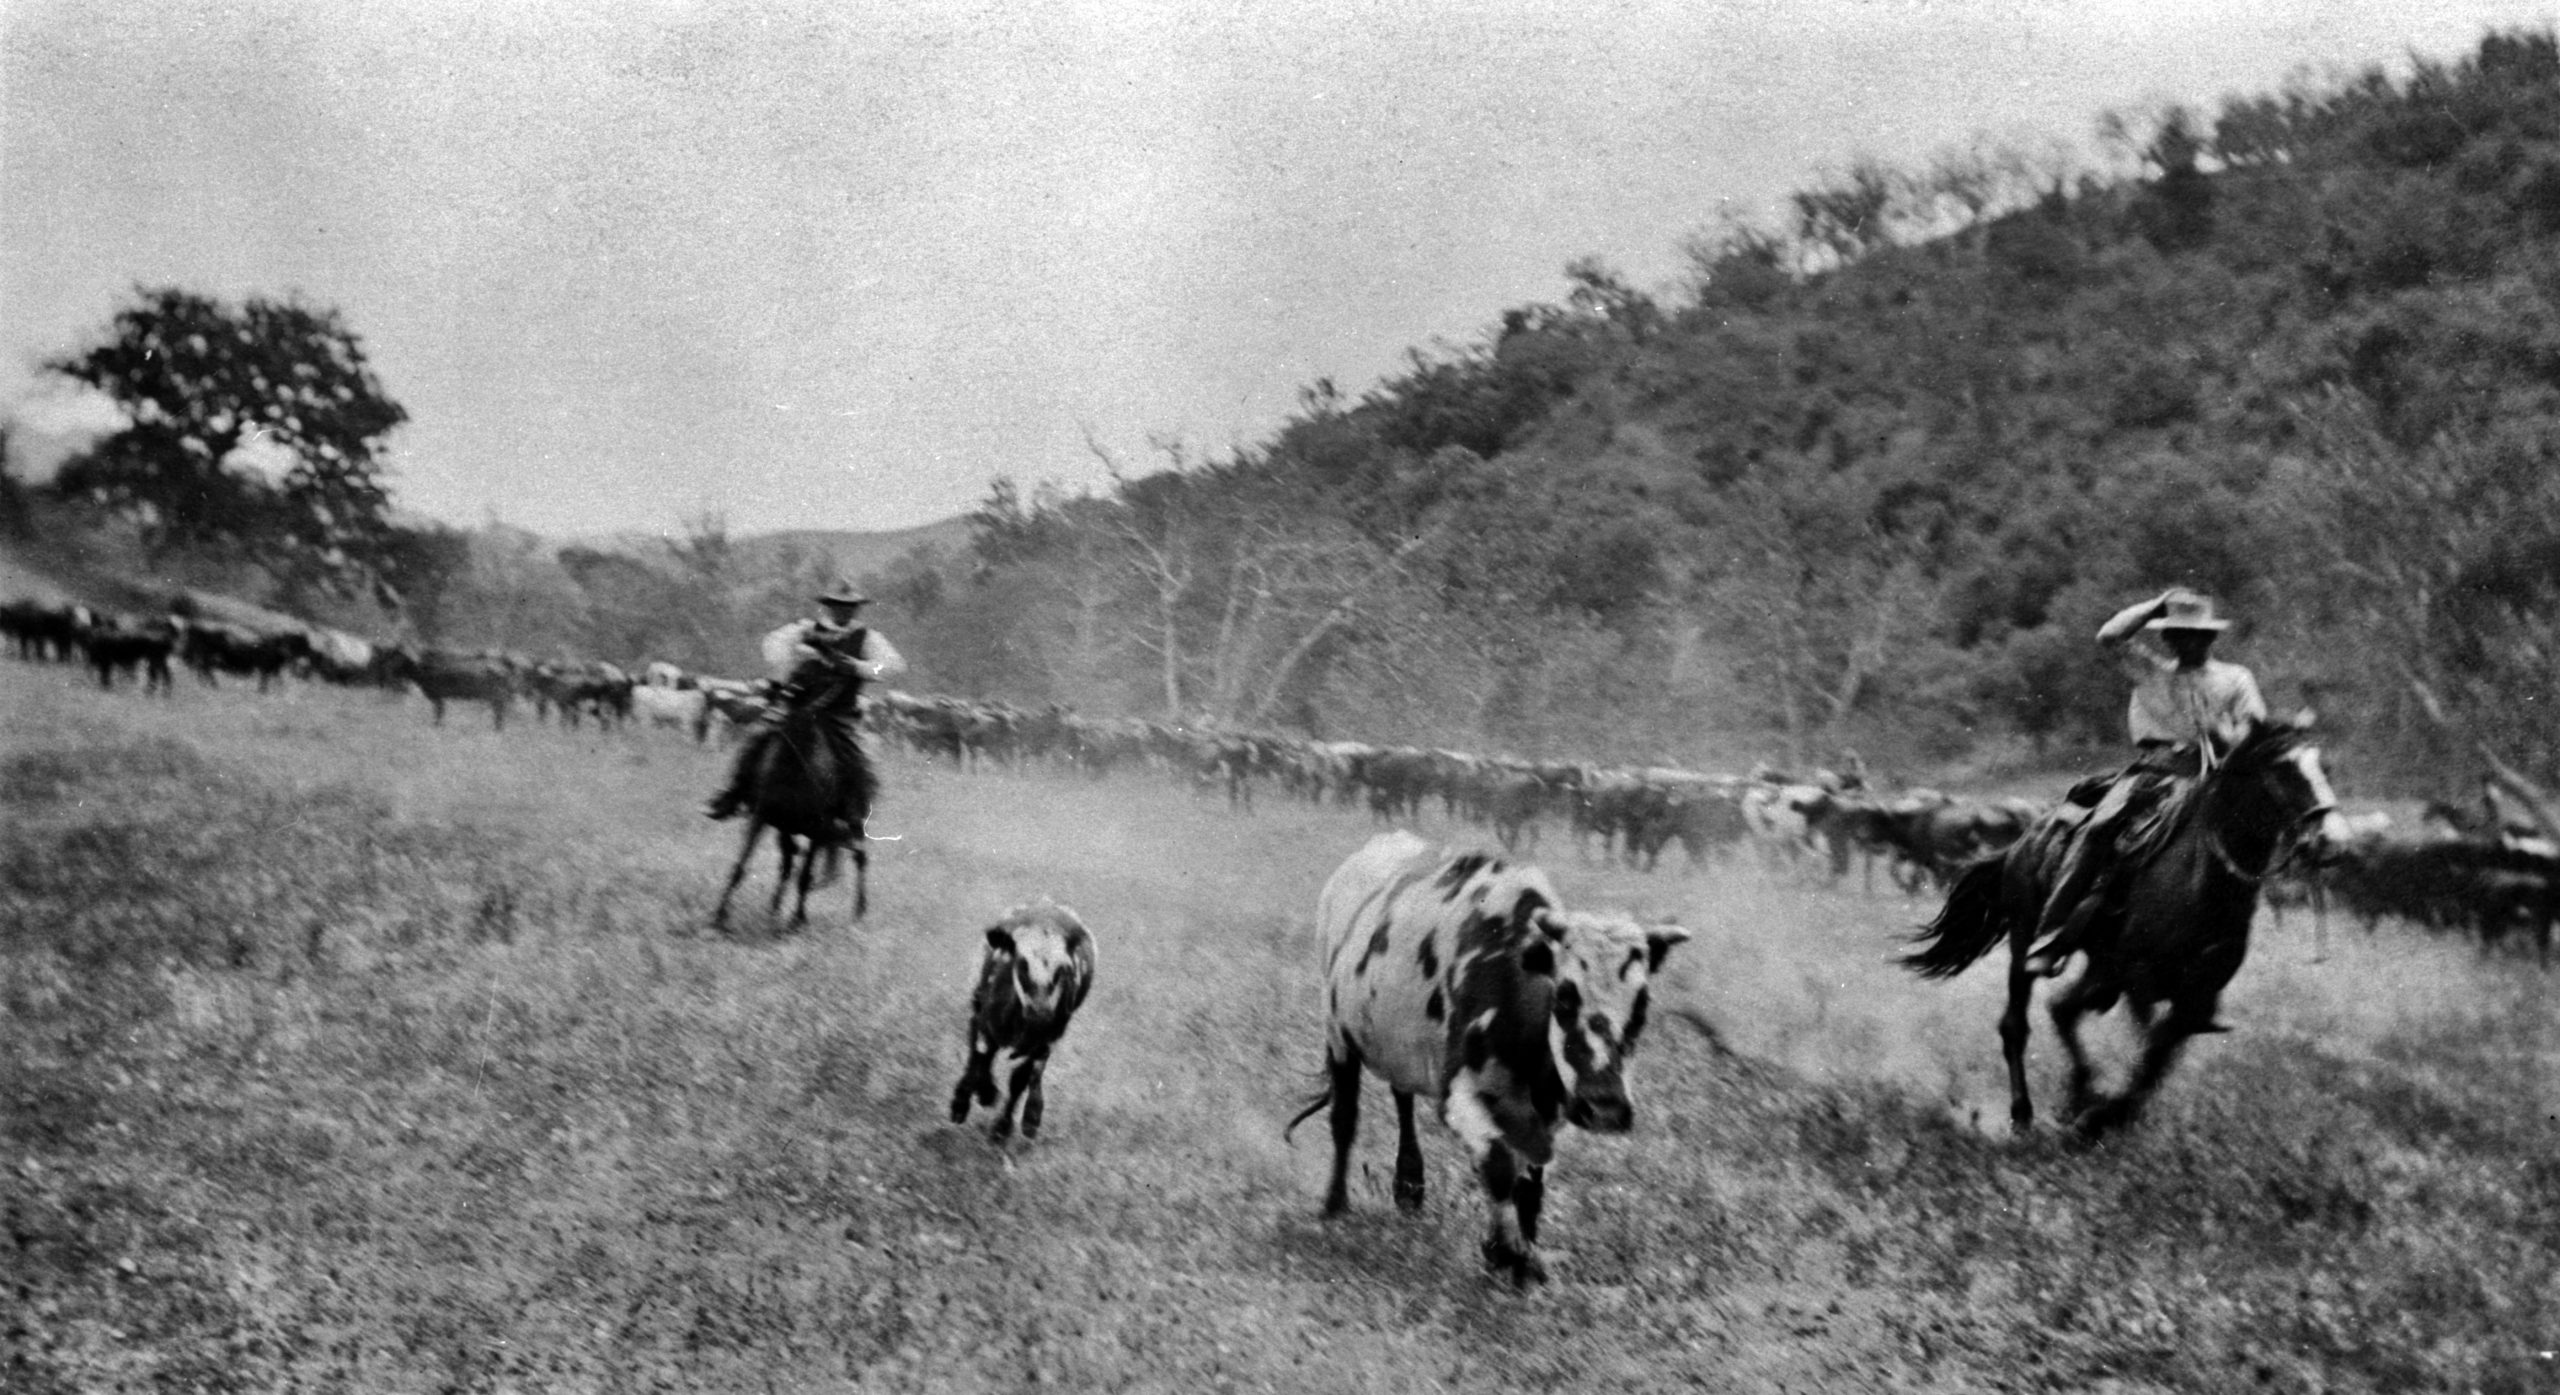 Rounding up the cattle in 1875